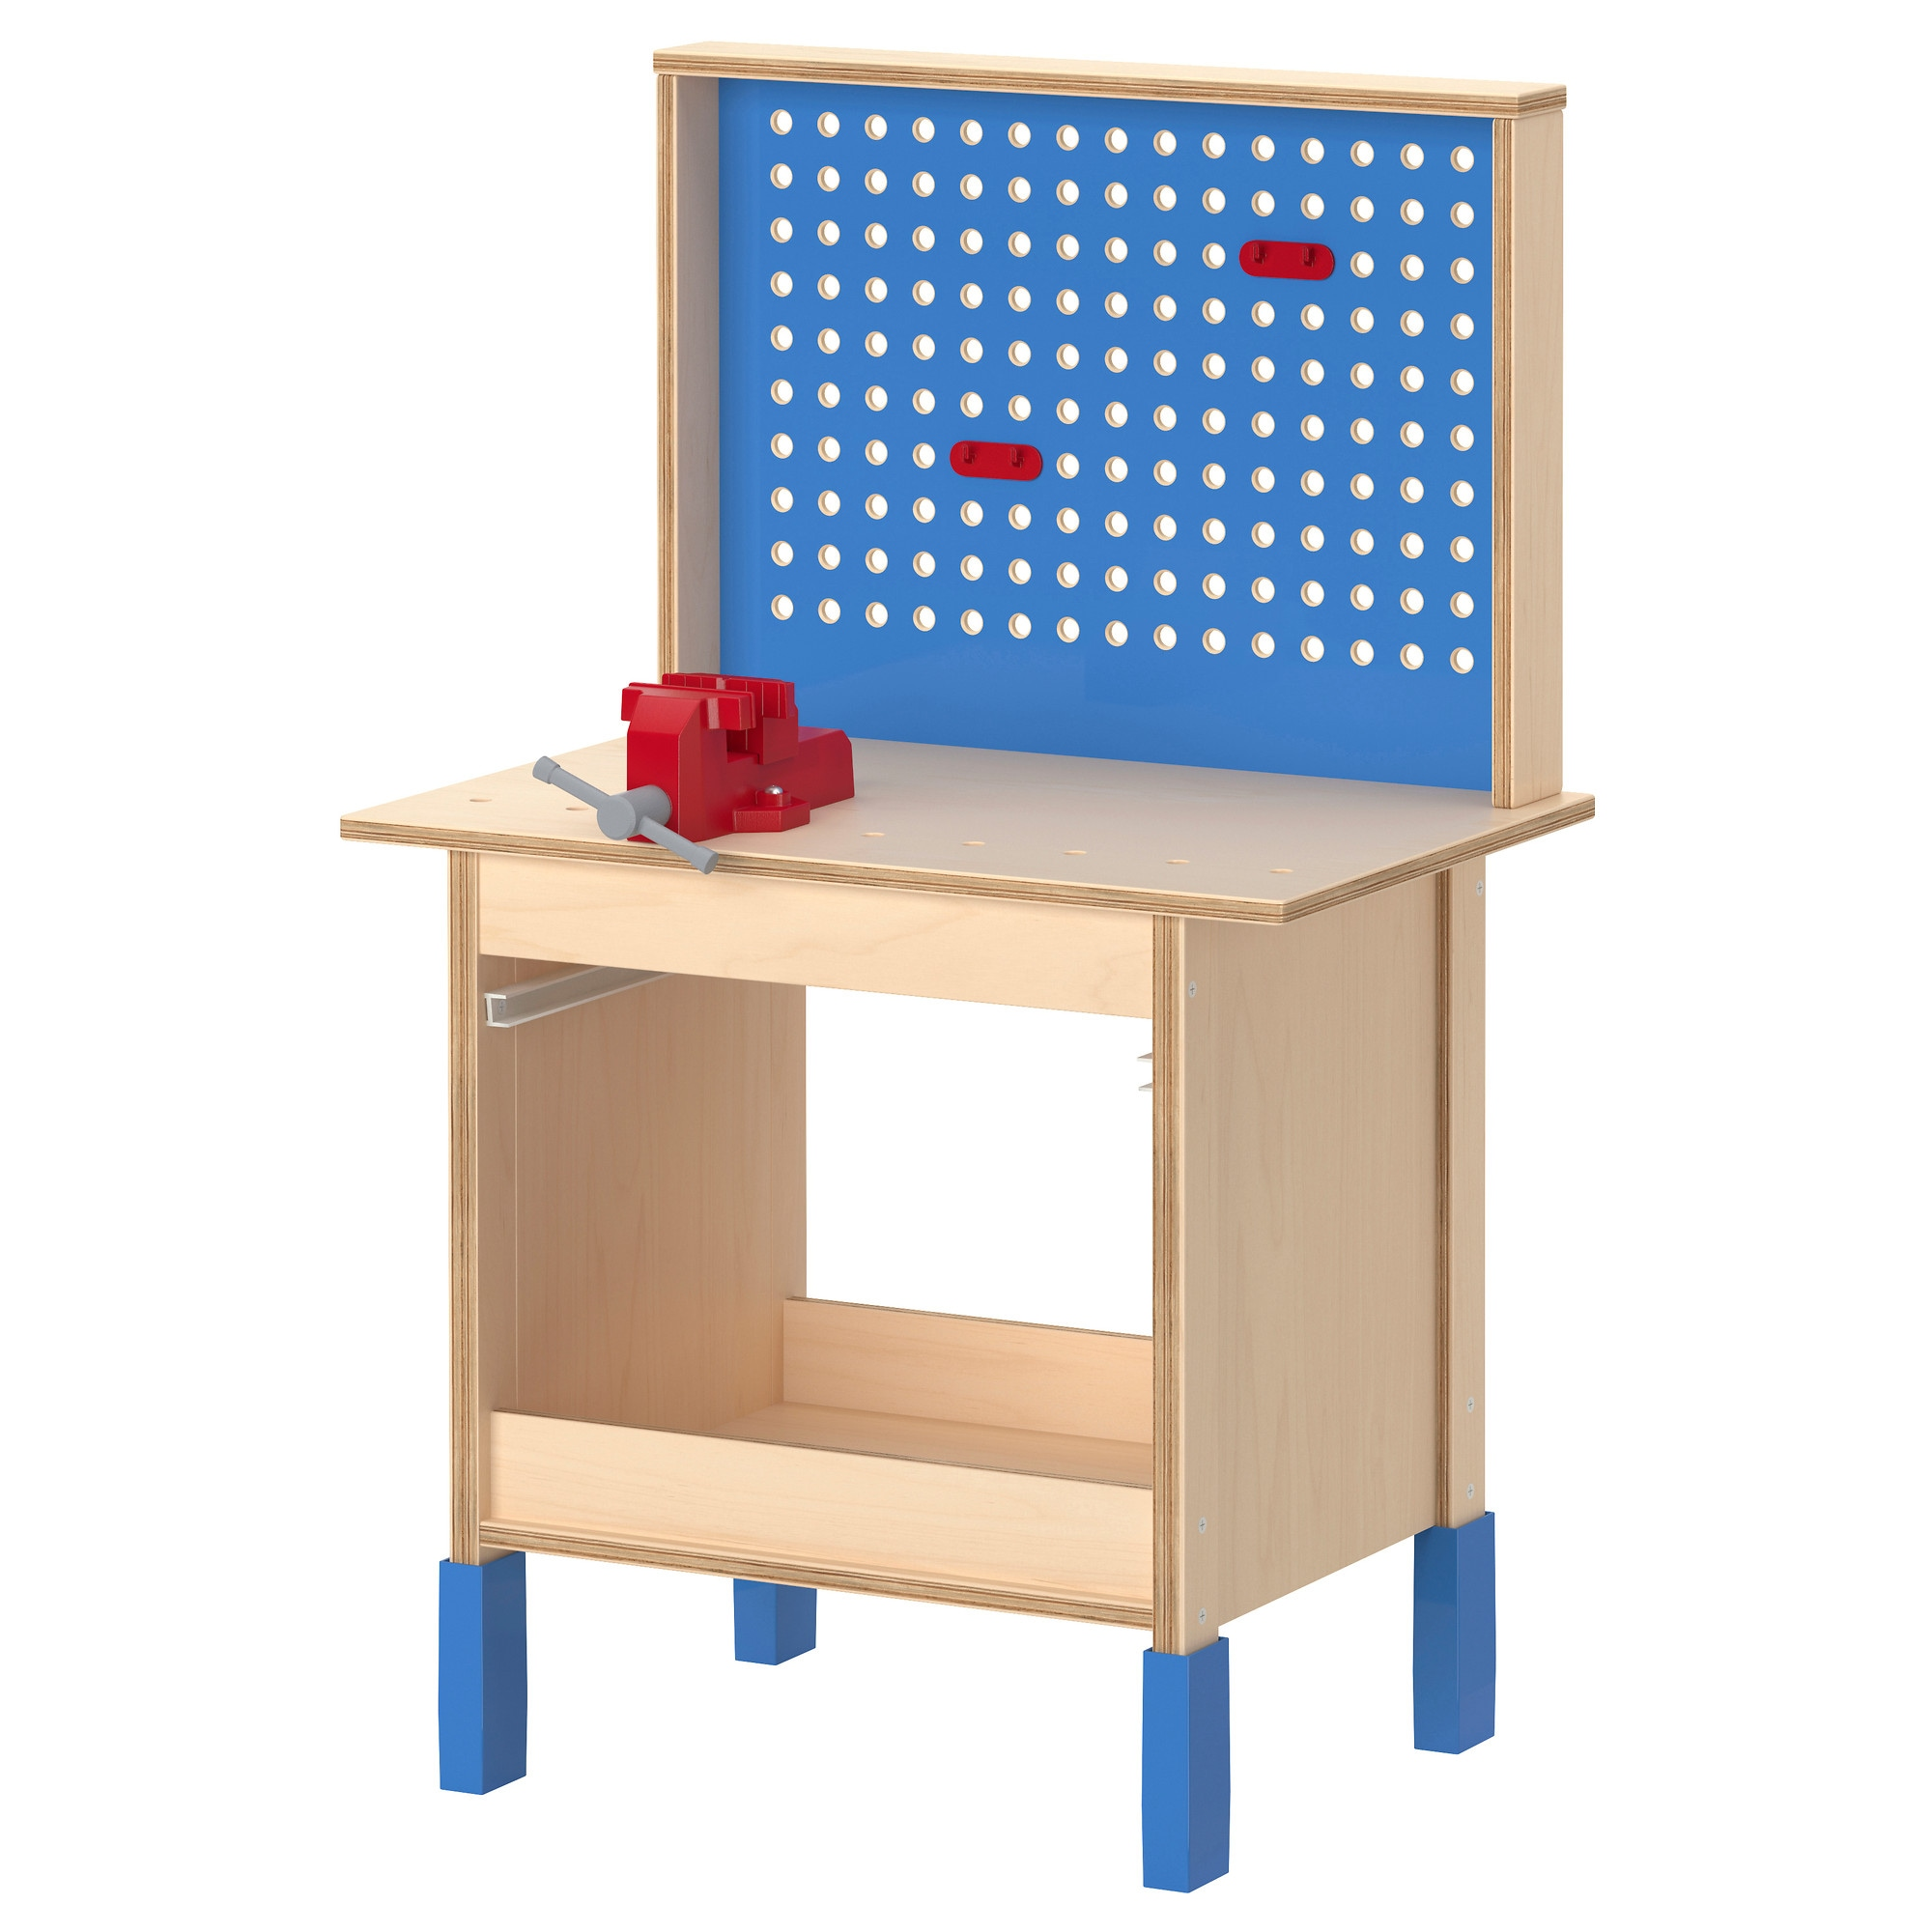 download ikea childrens wooden tool bench plans free